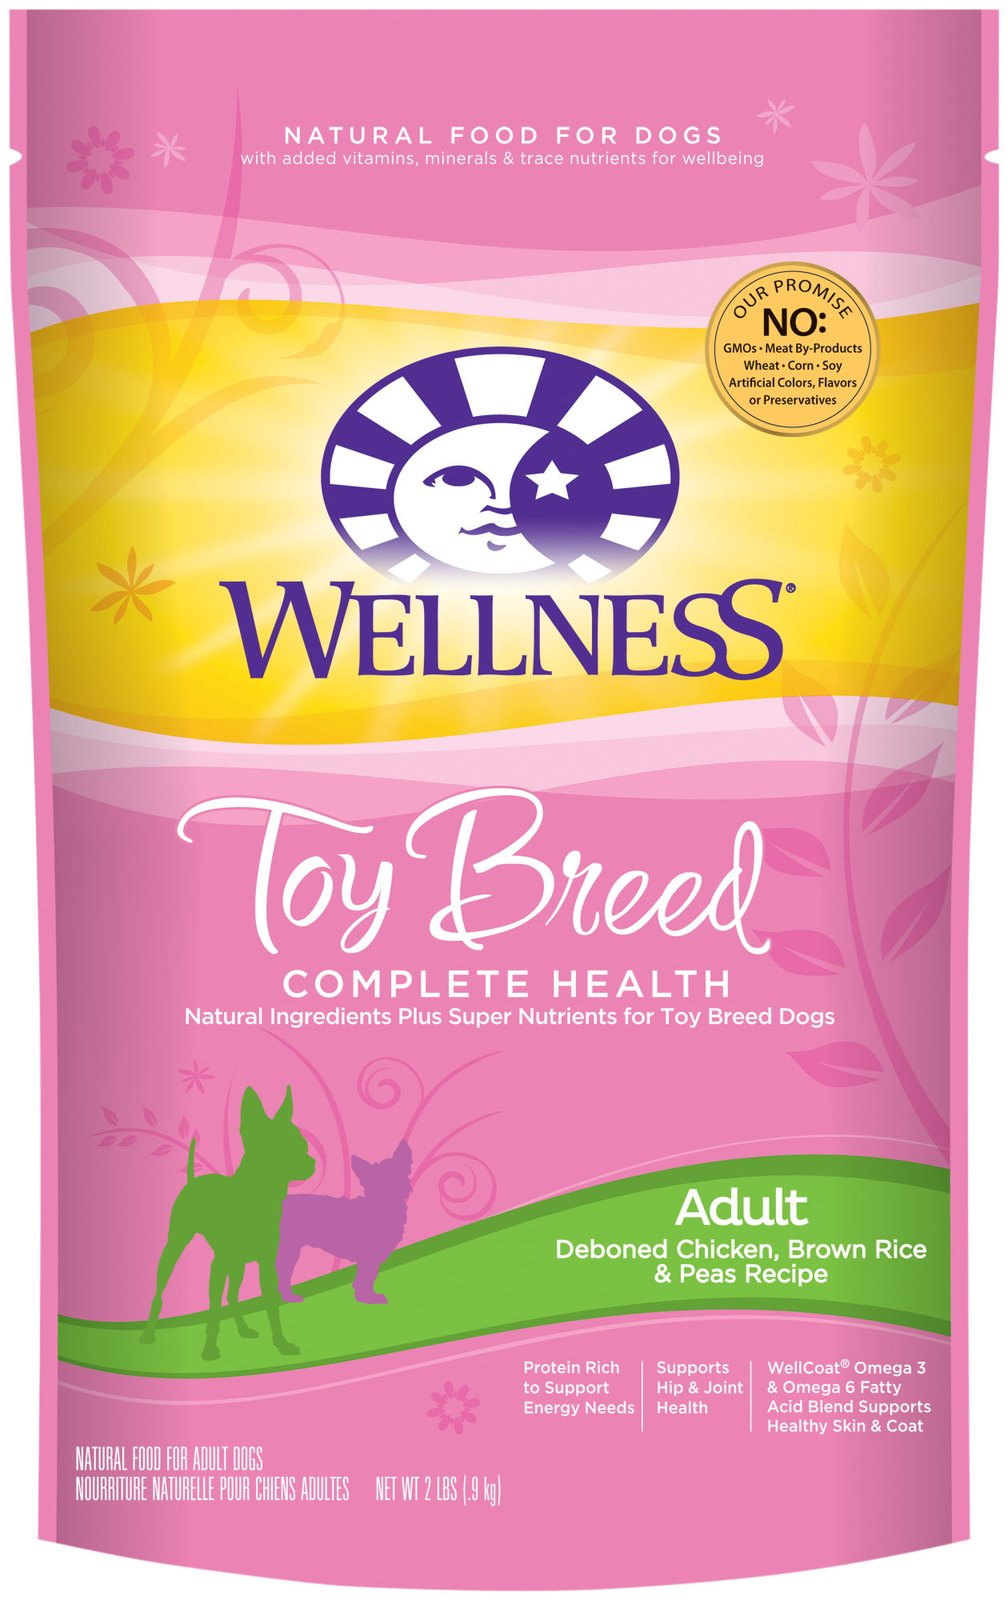 Toy Breed Complete Health Adult Deboned Chicken, Brown Rice & Peas Recipe